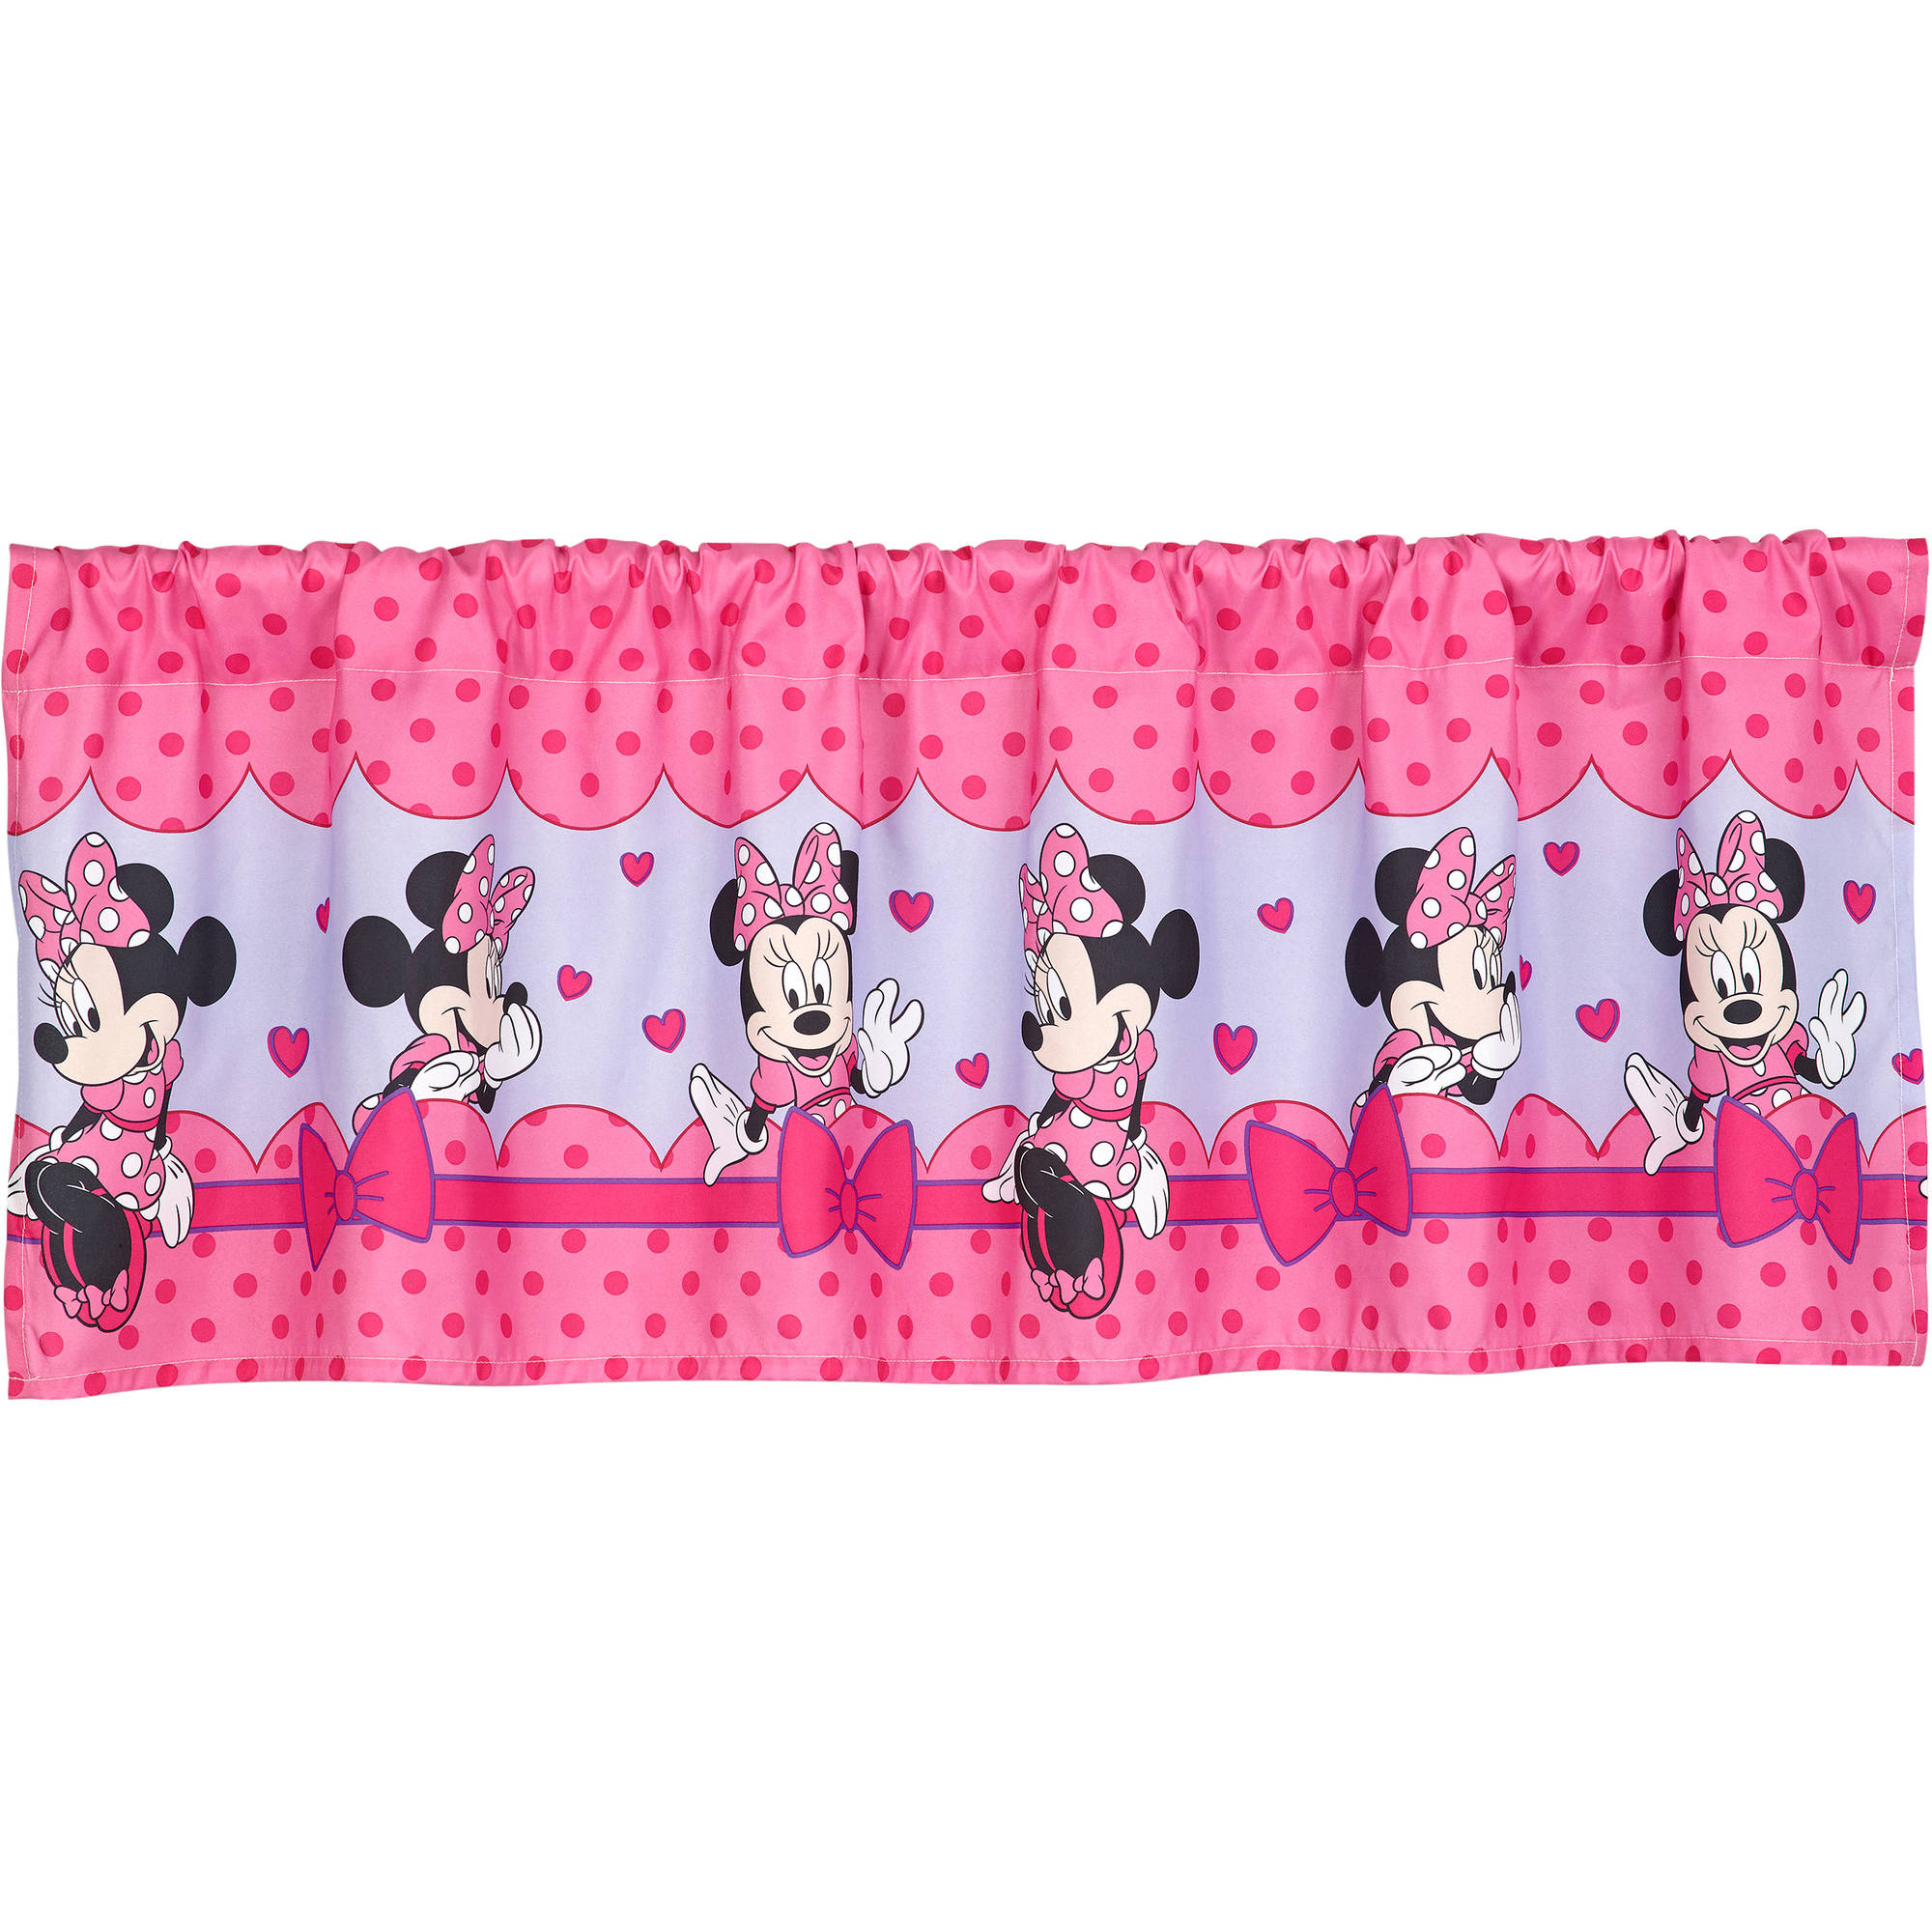 Disney Minnie Mouse Bow Power Girls Bedroom Curtain Valance